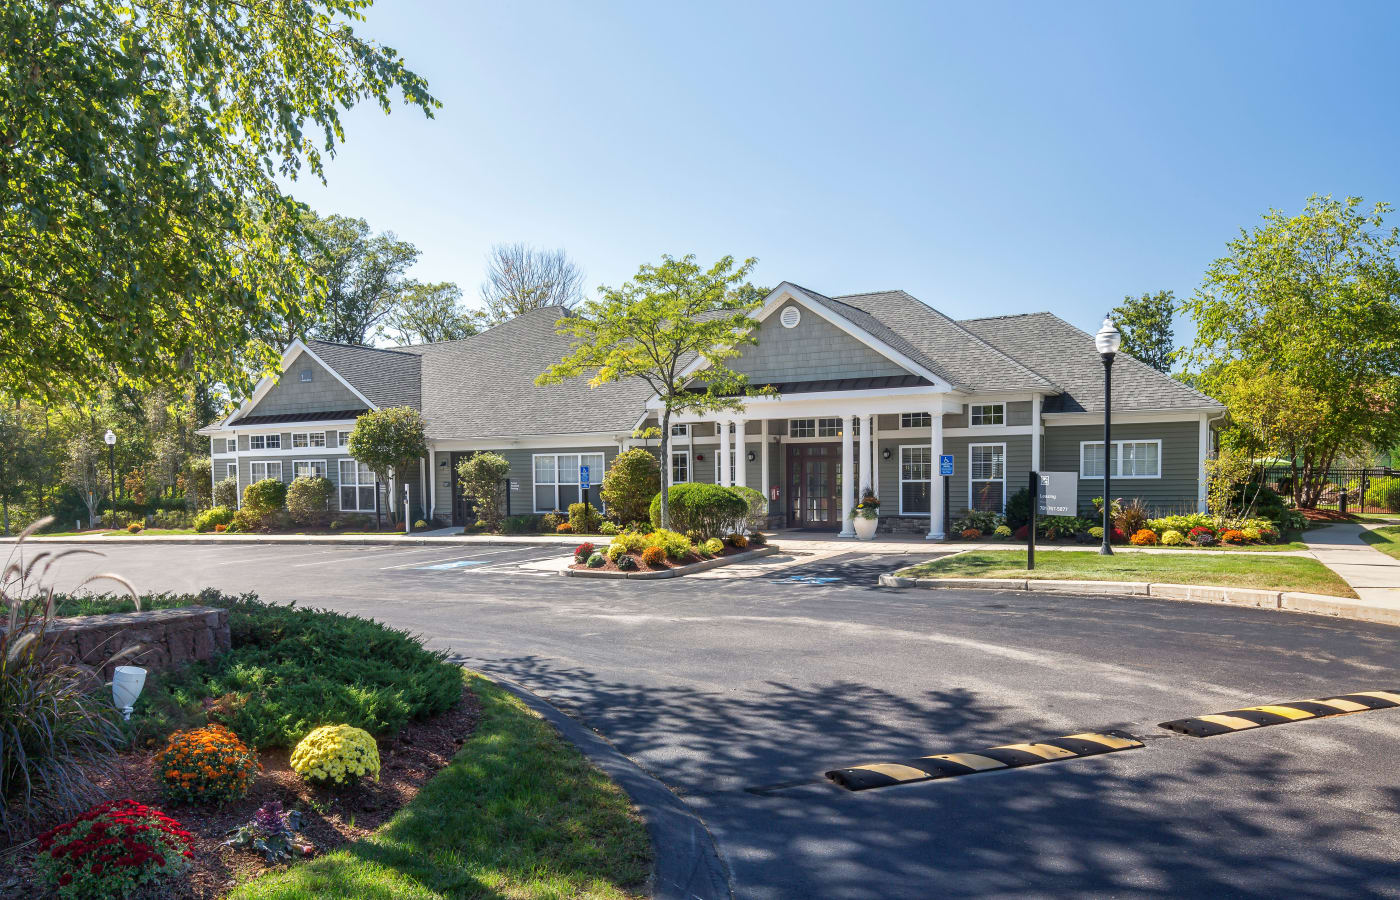 Exterior view of leasing office and well-maintained landscaping at Prynne Hills in Canton, MA